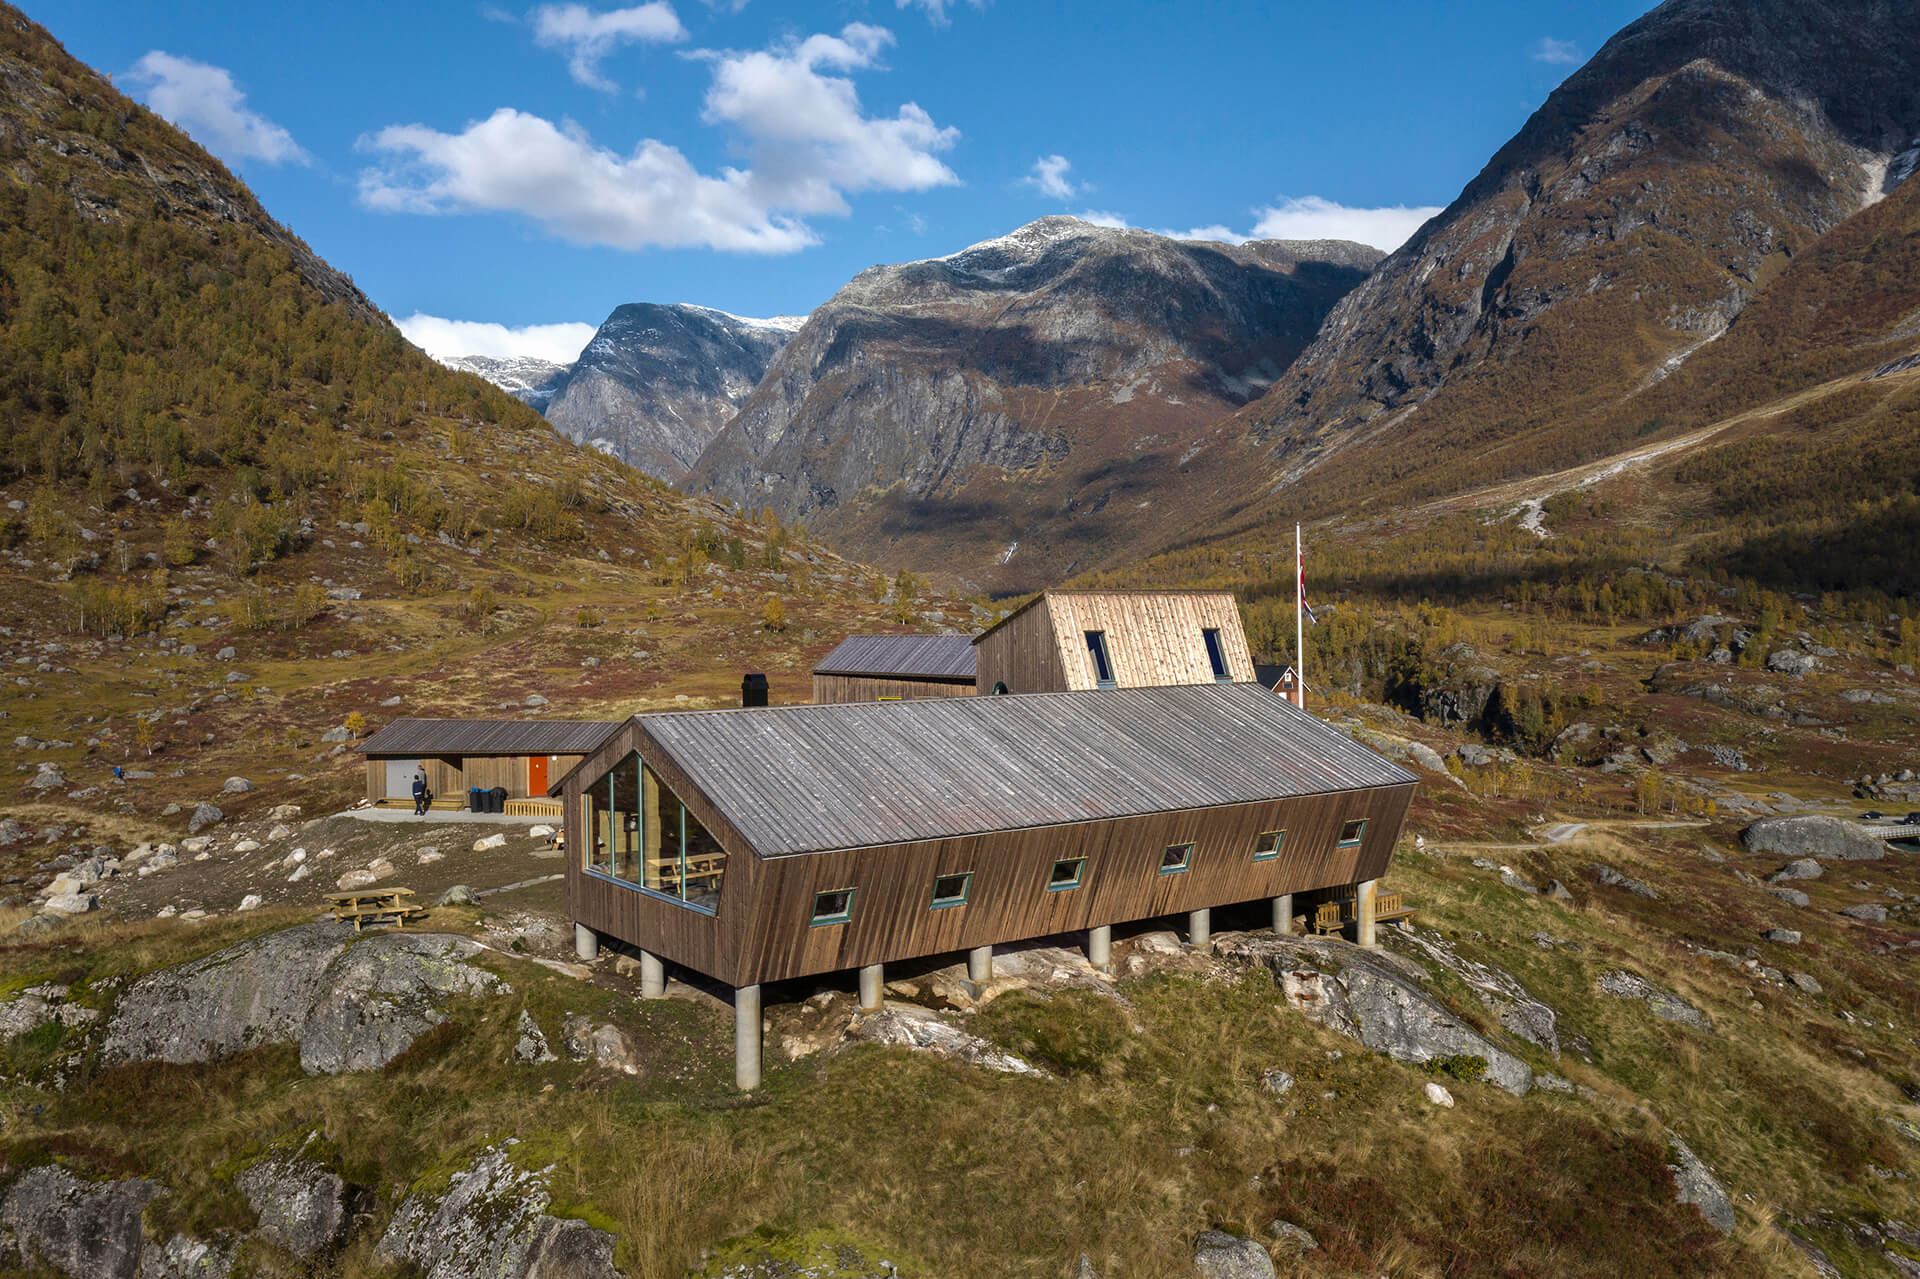 The main Tungestølen cabin with a sloped roof and timber work | Tungestølen Hiking Cabin by Snøhetta | STIRworld